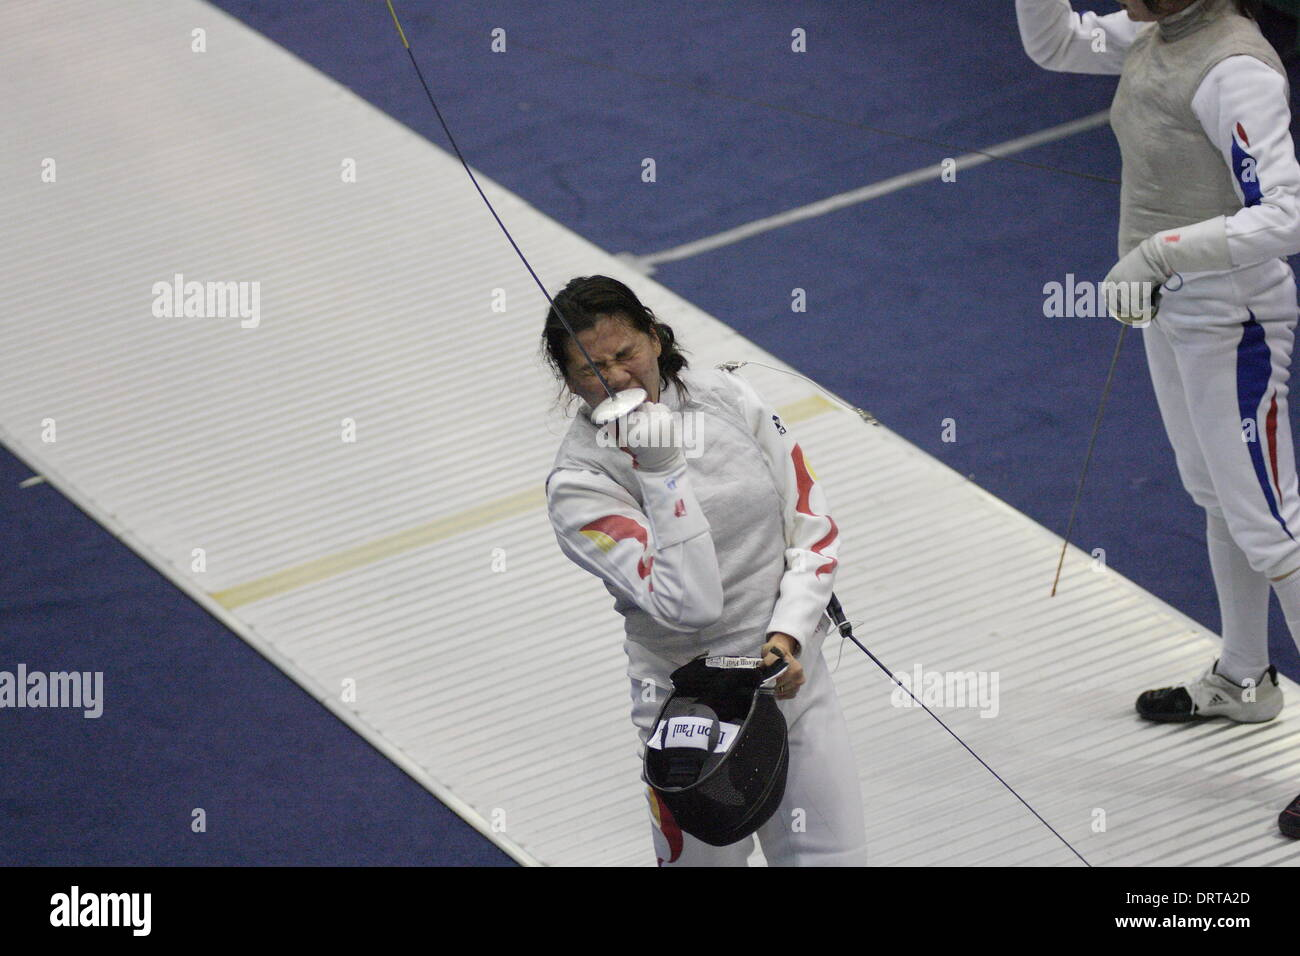 Ellen Preis foil fencer, Olympic champion and 3-time world champion Ellen Preis foil fencer, Olympic champion and 3-time world champion new picture